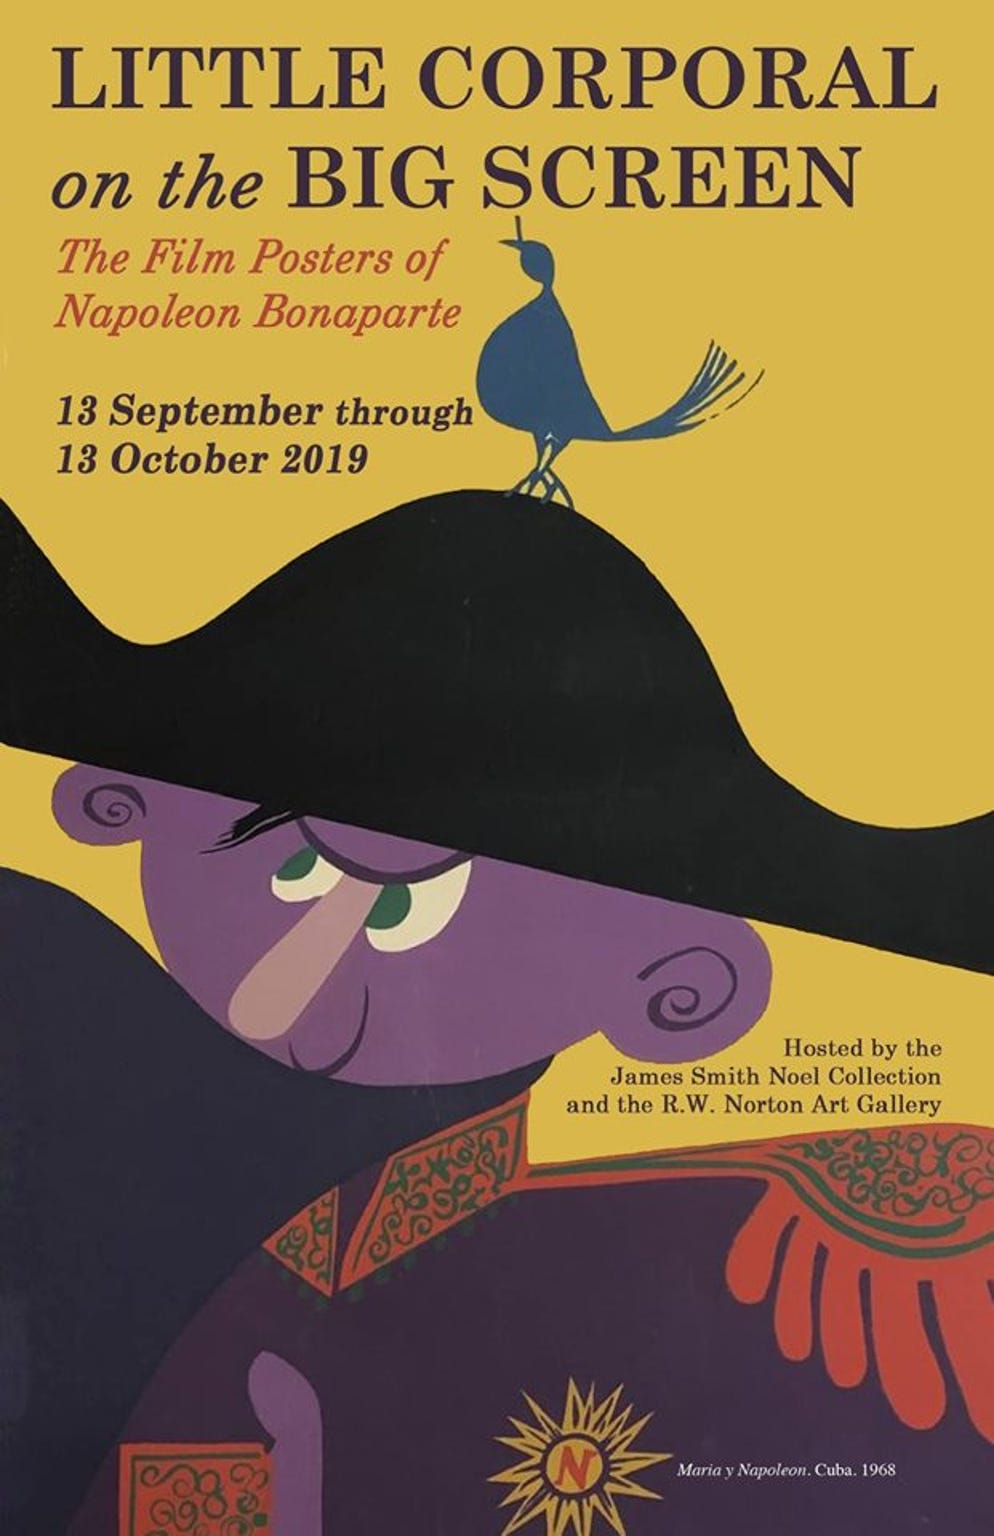 """""""Little Corporal on the Big Screen: The Film Posters of Napoleon Bonaparte,"""" presented by Noel Collection and Norton Art Gallery, will run from Sept. 13 to Oct. 13 at Norton Art Gallery."""